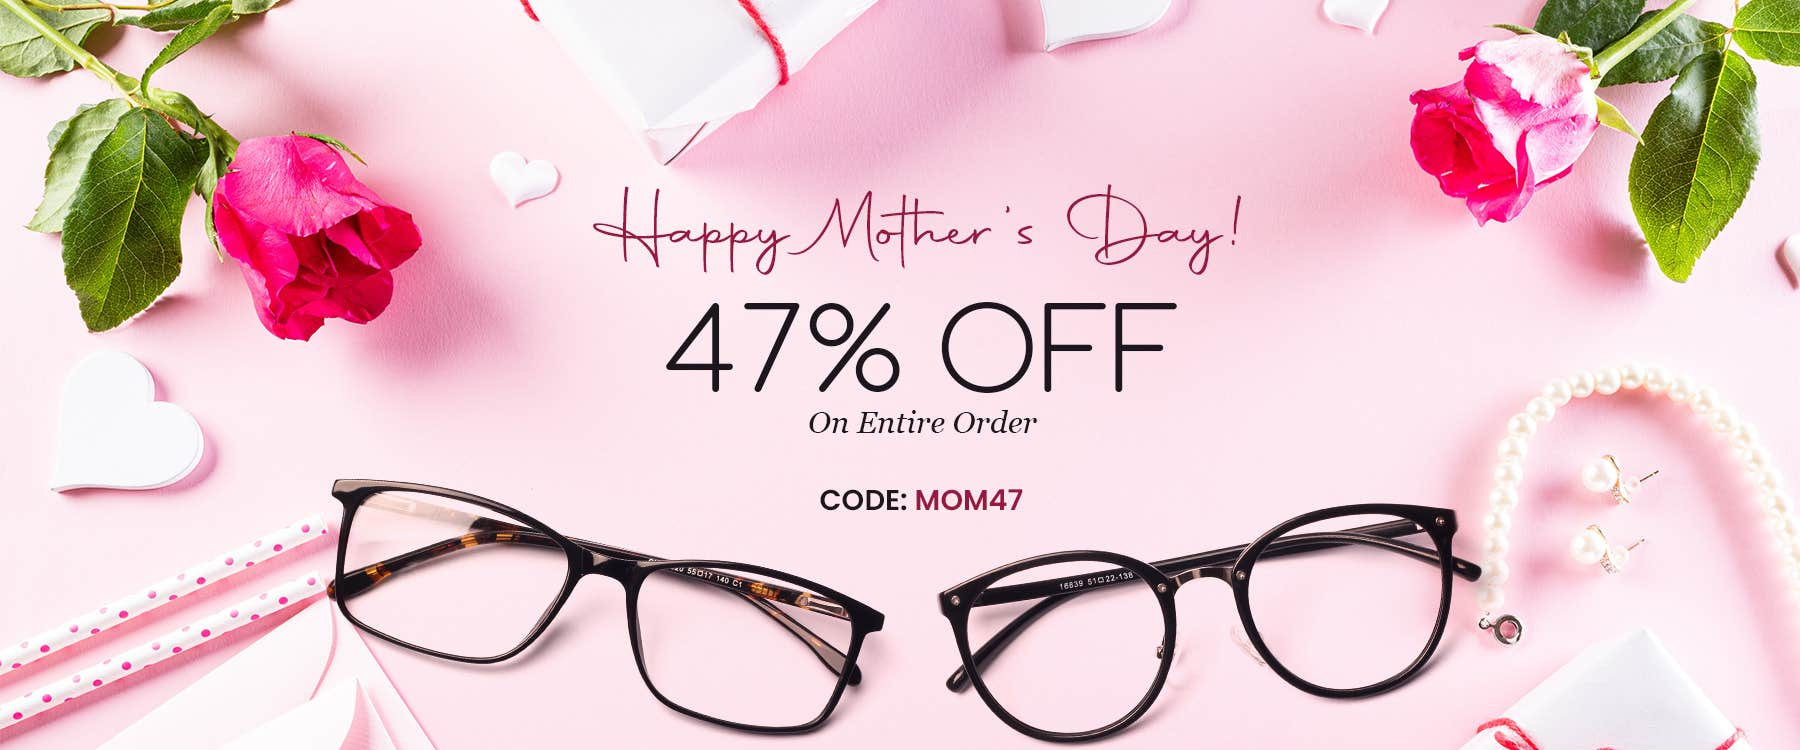 Mother's Day Sale 47% OFF On Entire Order CODE: MOM47